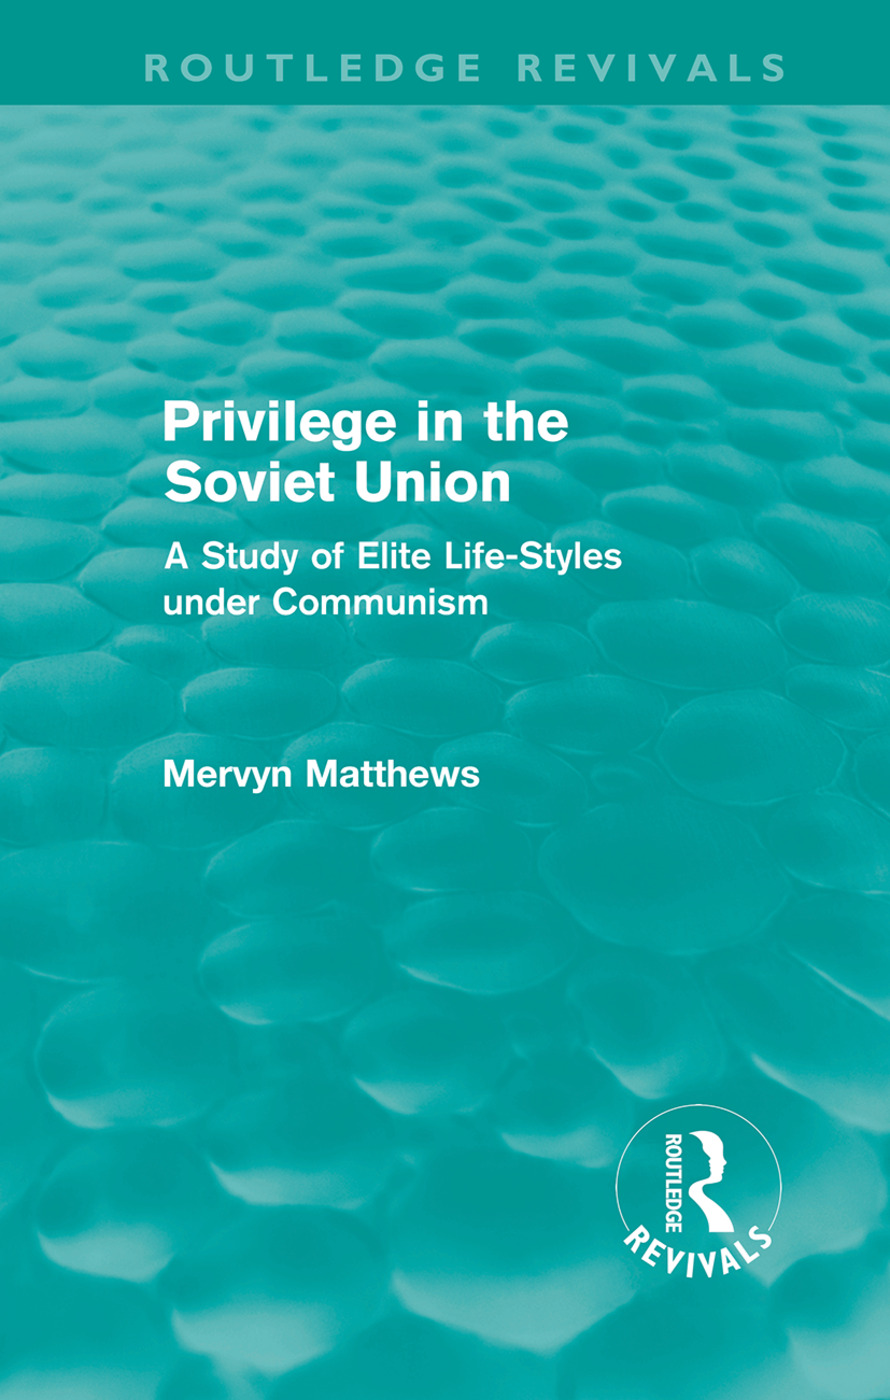 Privilege in the Soviet Union (Routledge Revivals): A Study of Elite Life-Styles under Communism (Hardback) book cover